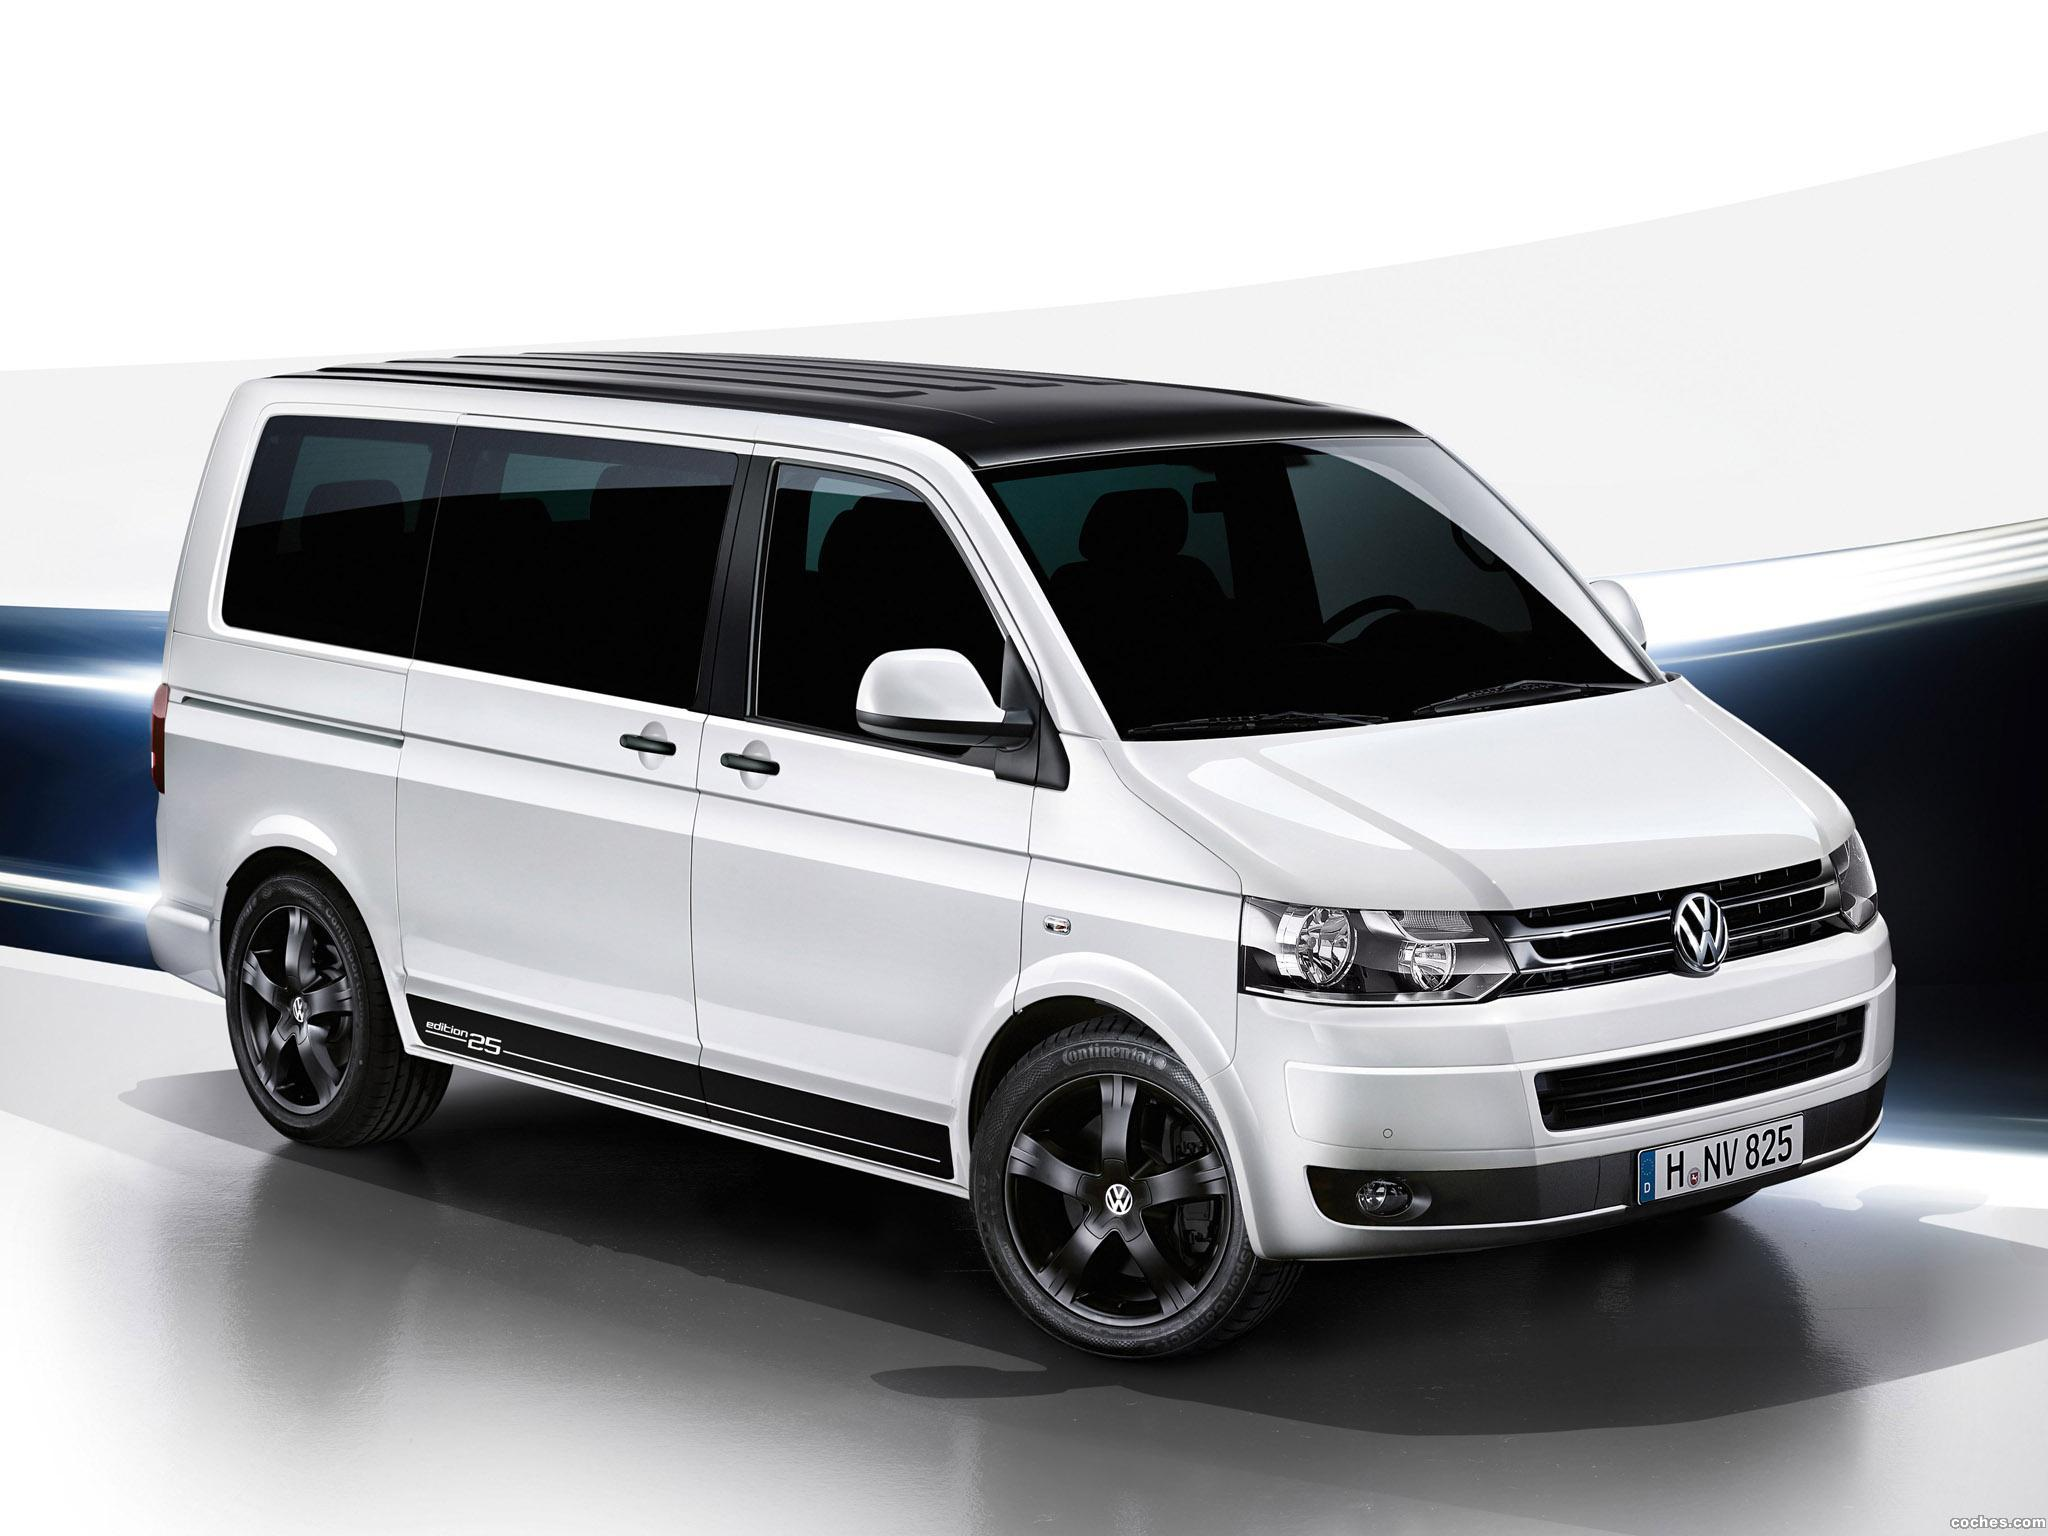 New Volkswagen Bus >> 3DTuning of Volkswagen Transporter T5 Van 2010 3DTuning.com - unique on-line car configurator ...